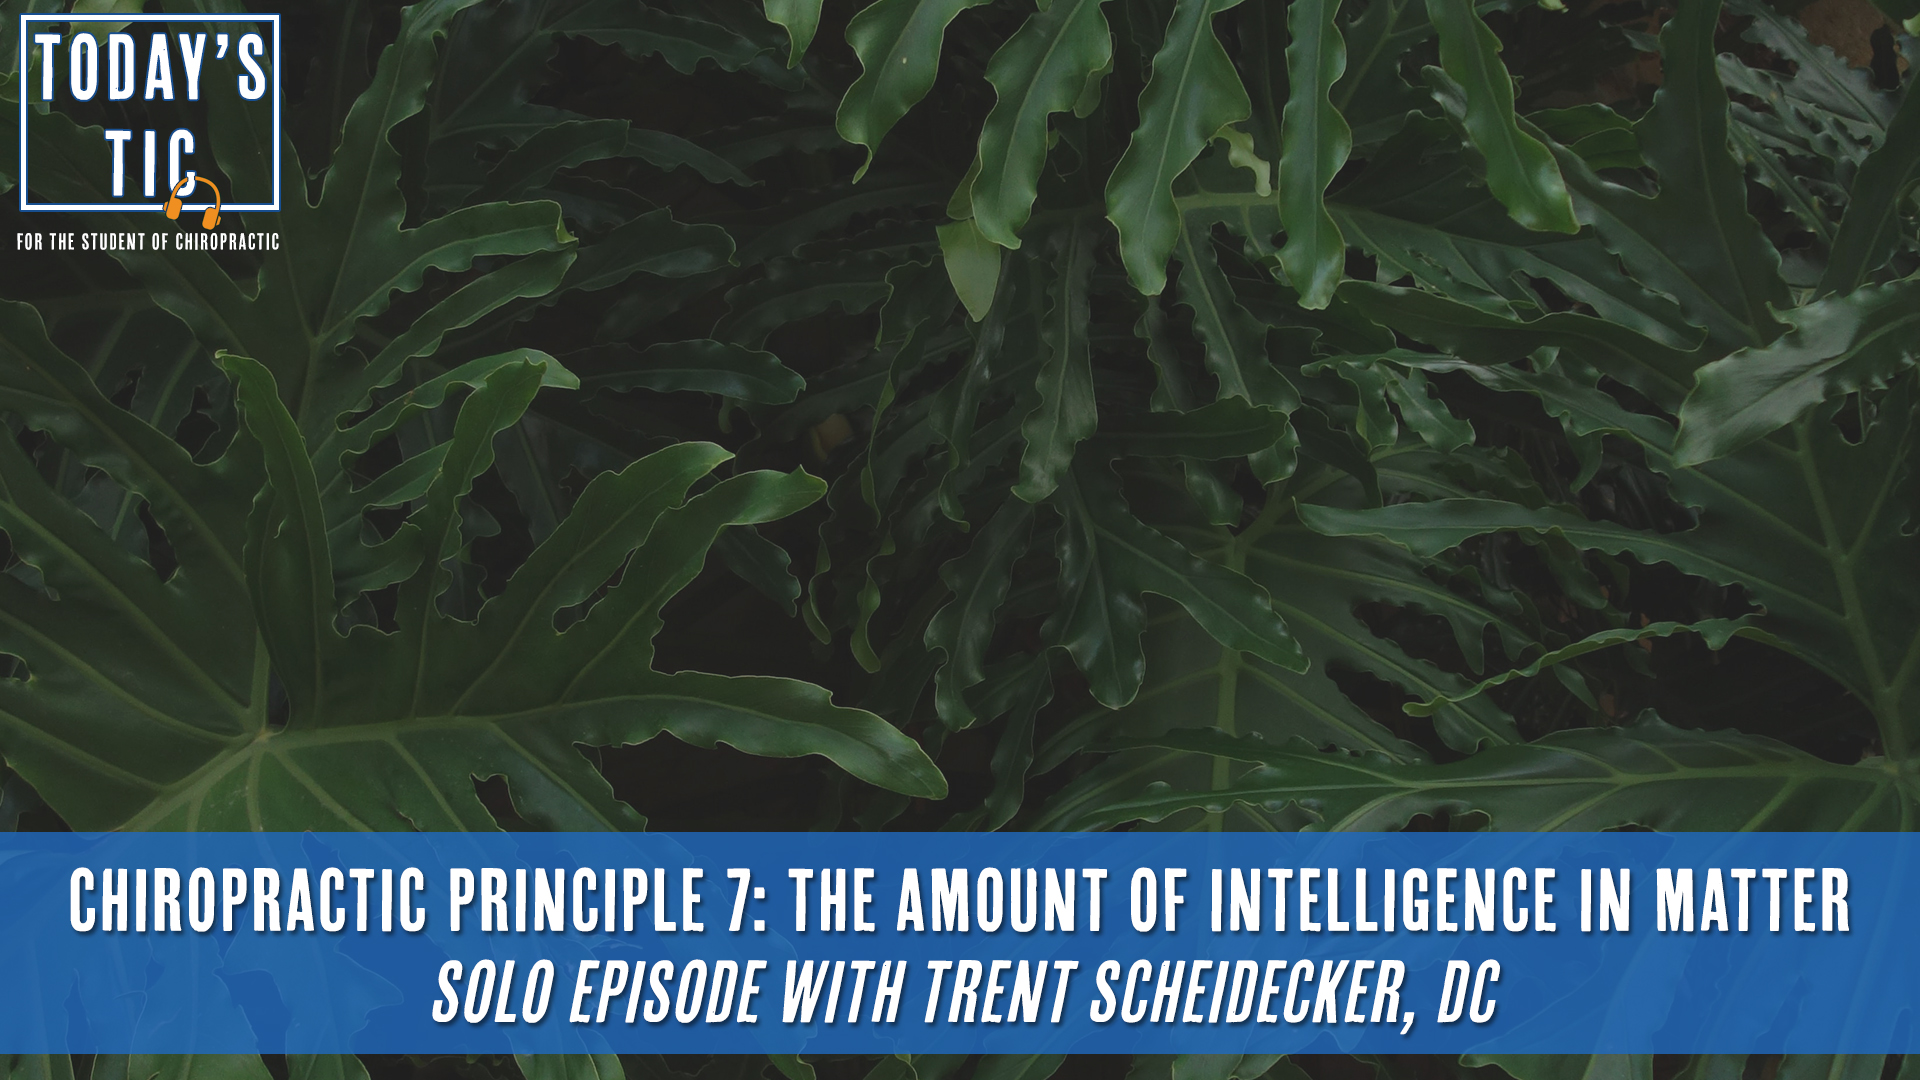 Chiropractic Principle 7: The Amount of Intelligence in Matter